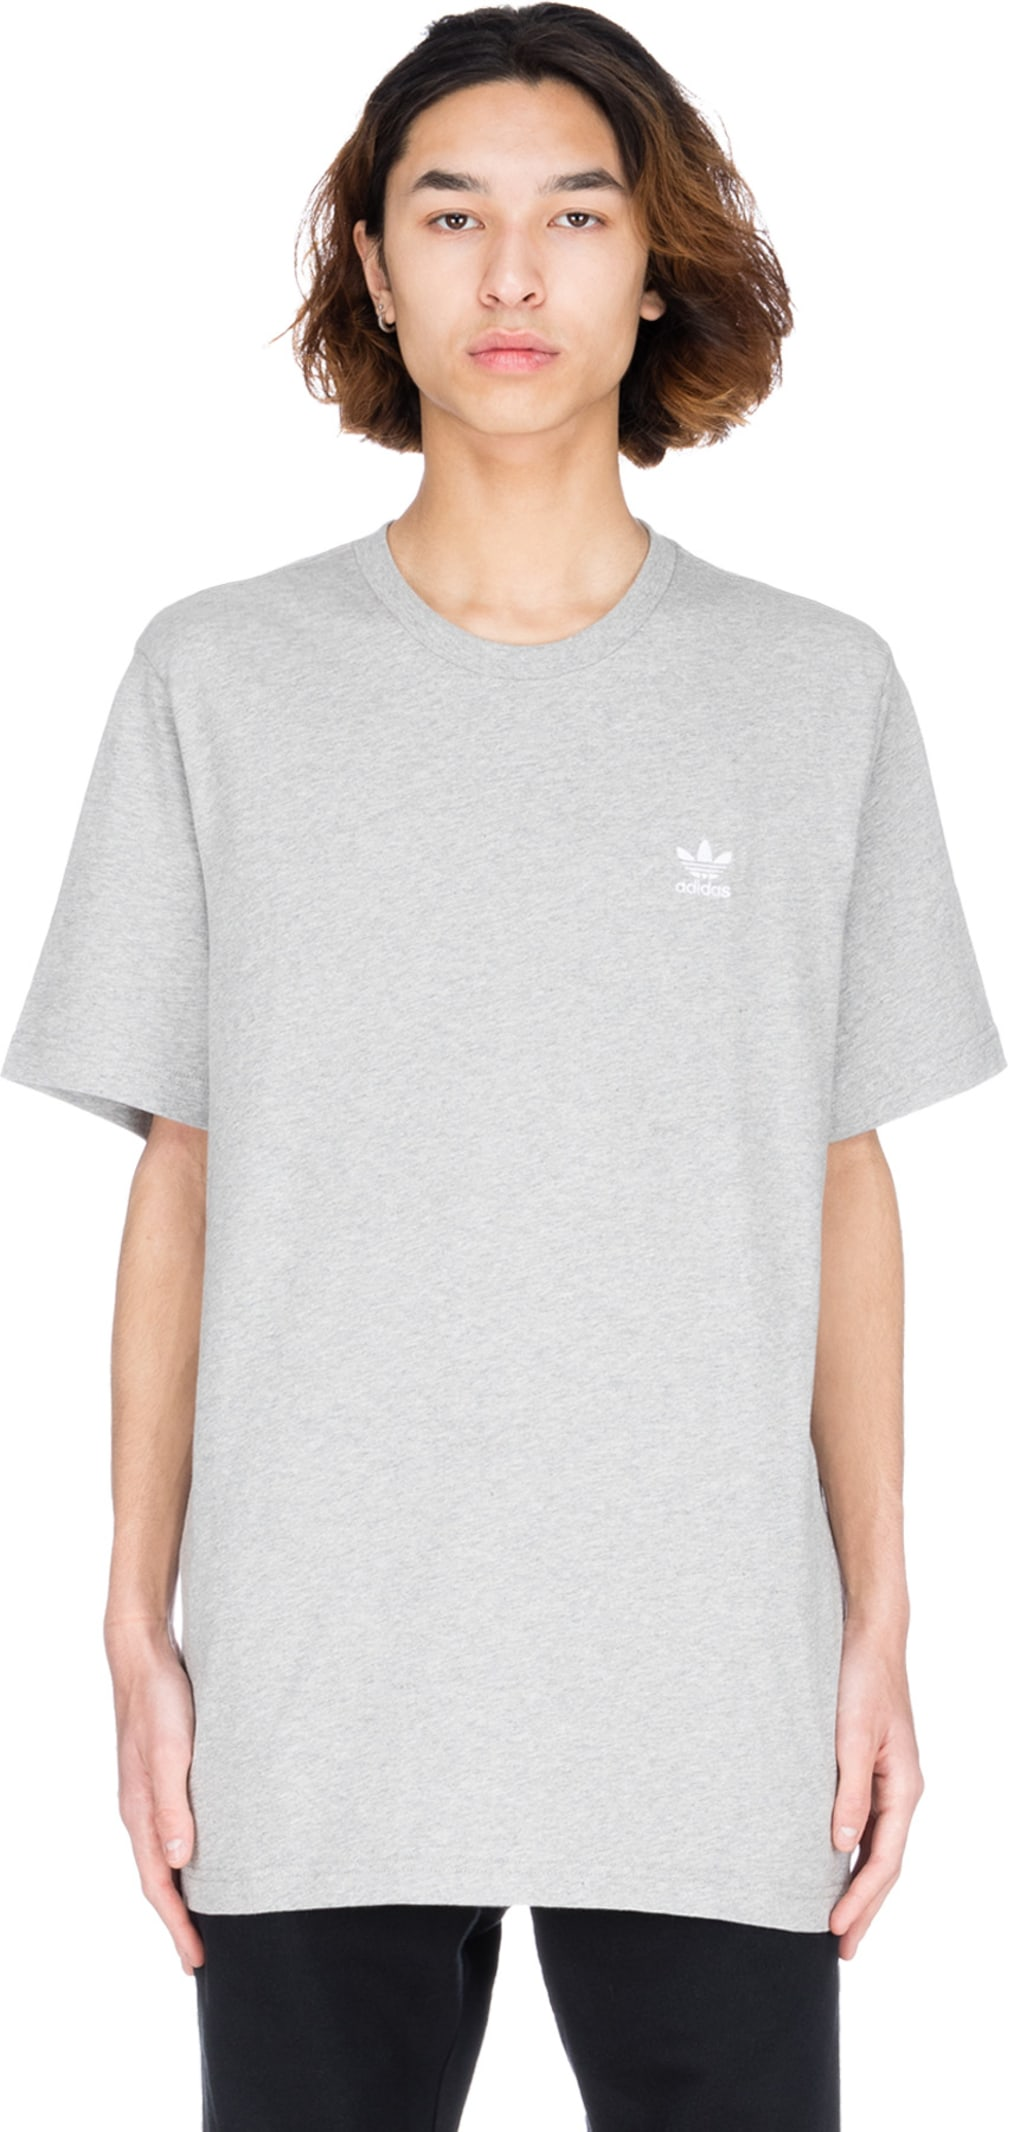 adidas Originals Essential T Shirt Medium Grey Heather